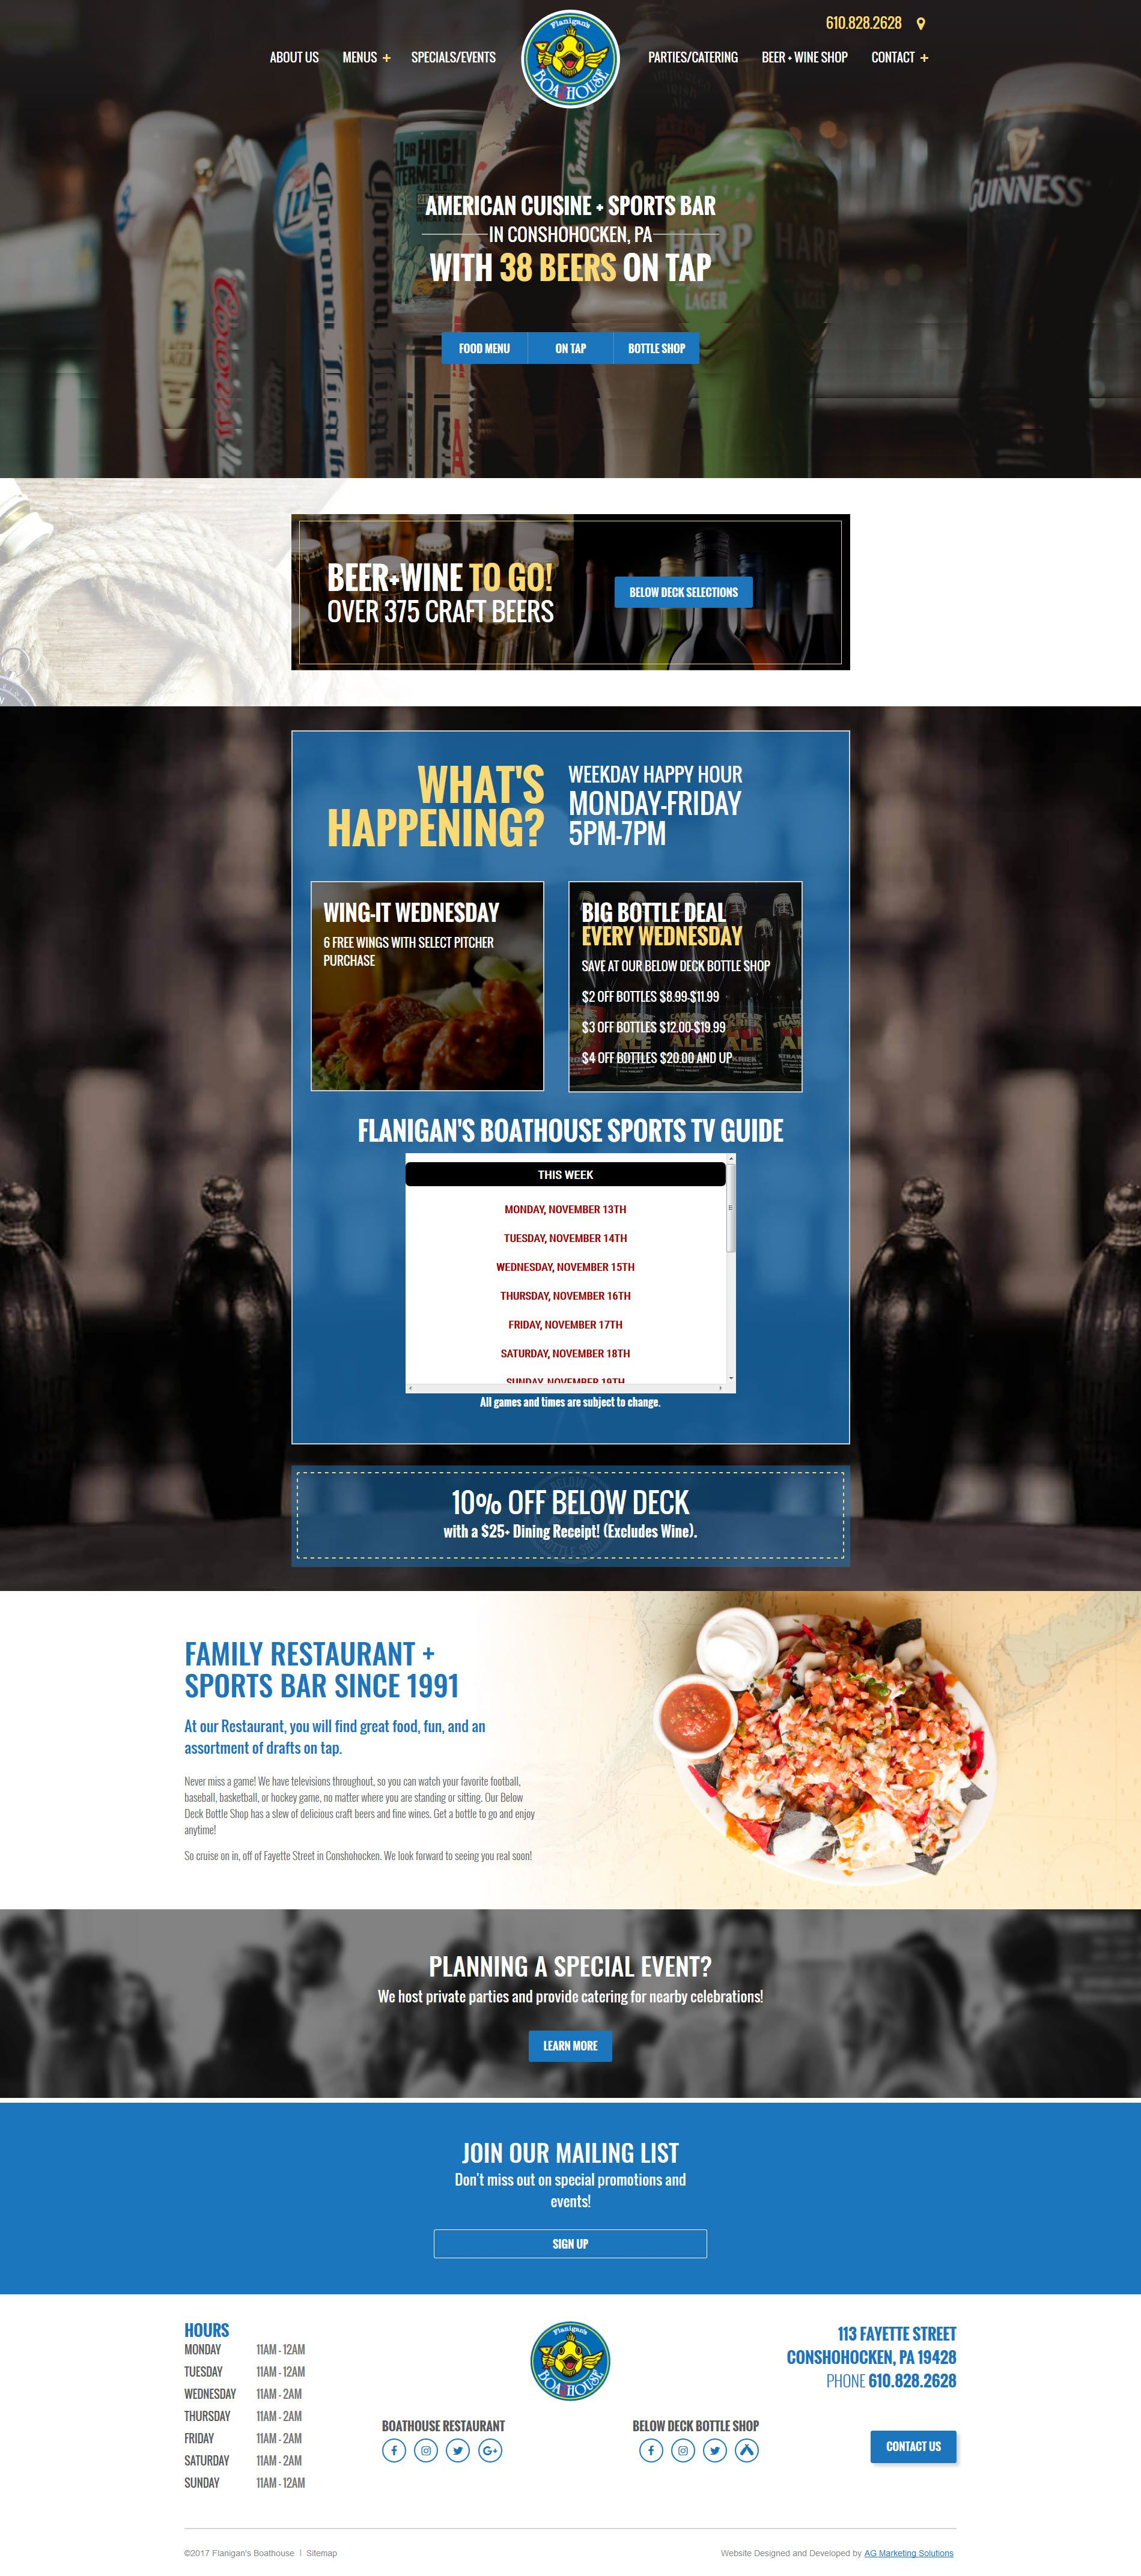 Flanigans Boathouse responsive website on a phone